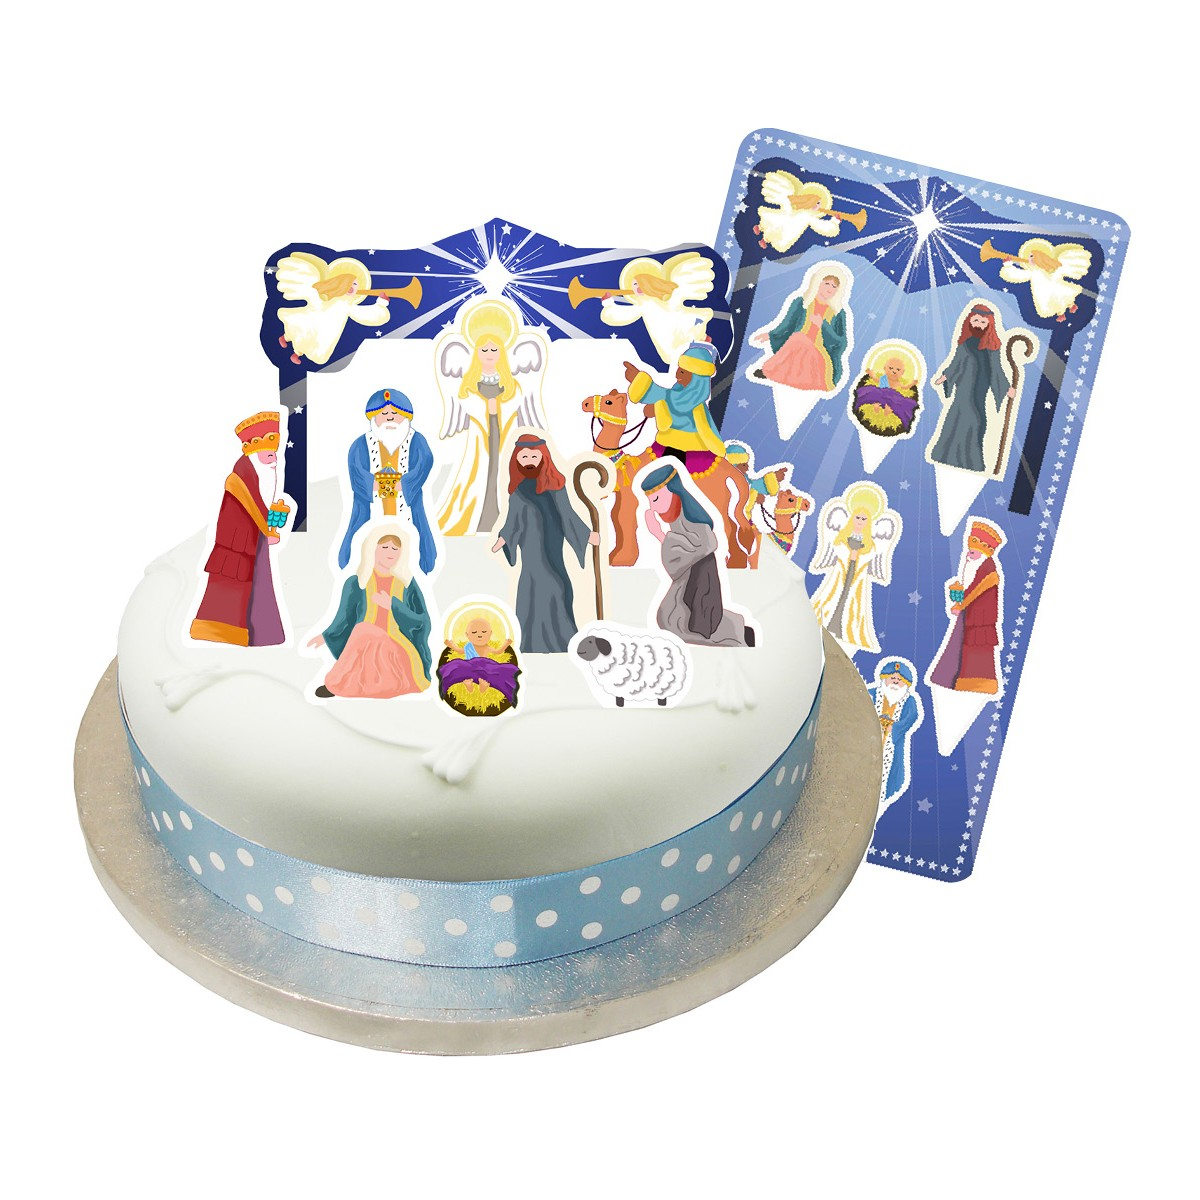 Buy Christmas Nativity Cake Topper Kit